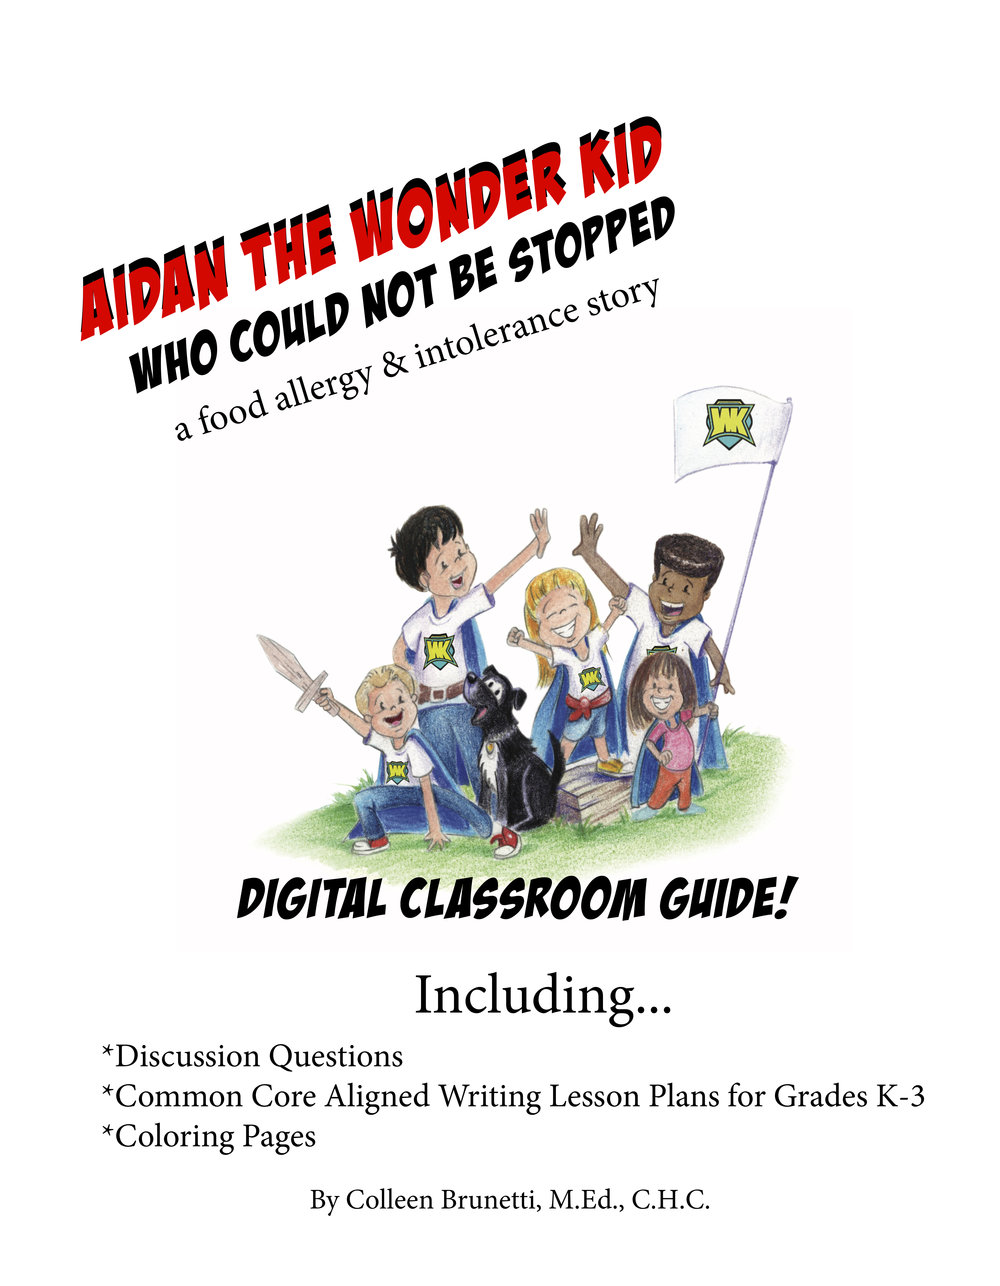 Web Image Classroom Guide Cover.jpg